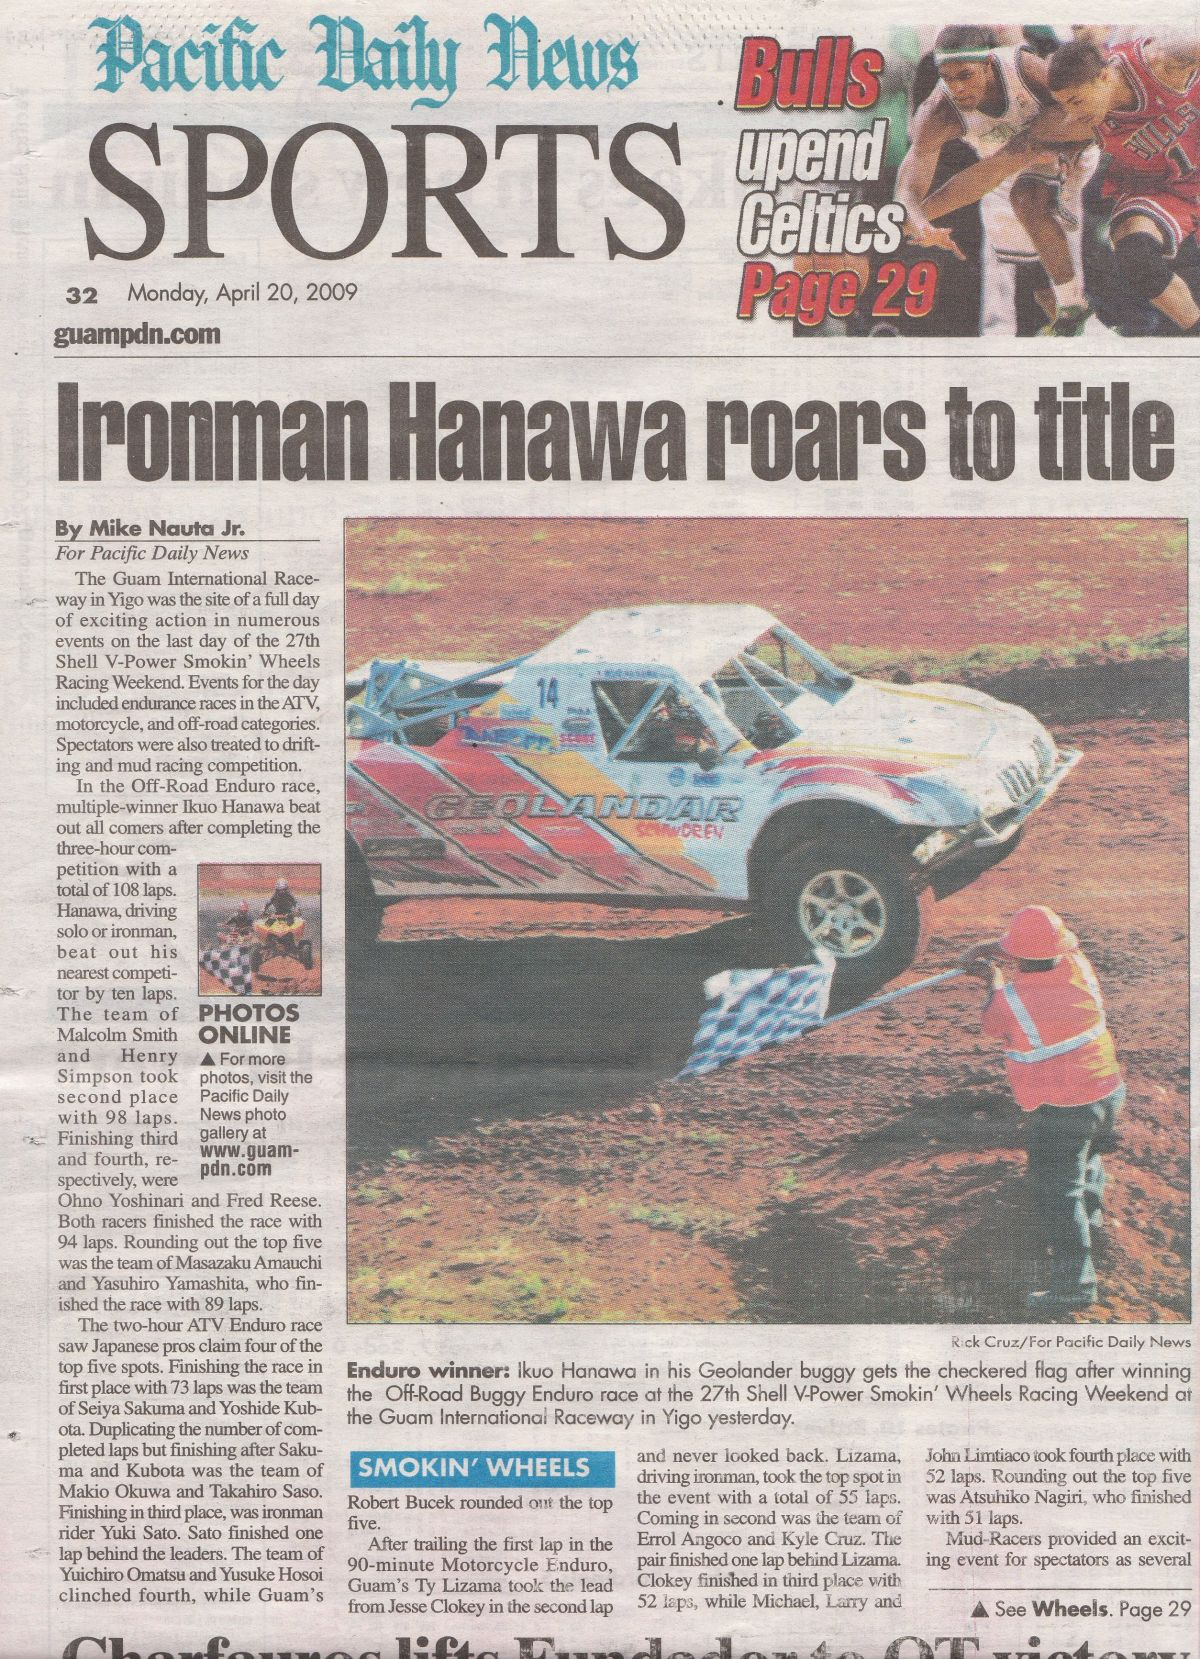 Pacific Daily Sports : 27th SMOKIN' WHEELS OFF ROAD GRANDPRIX